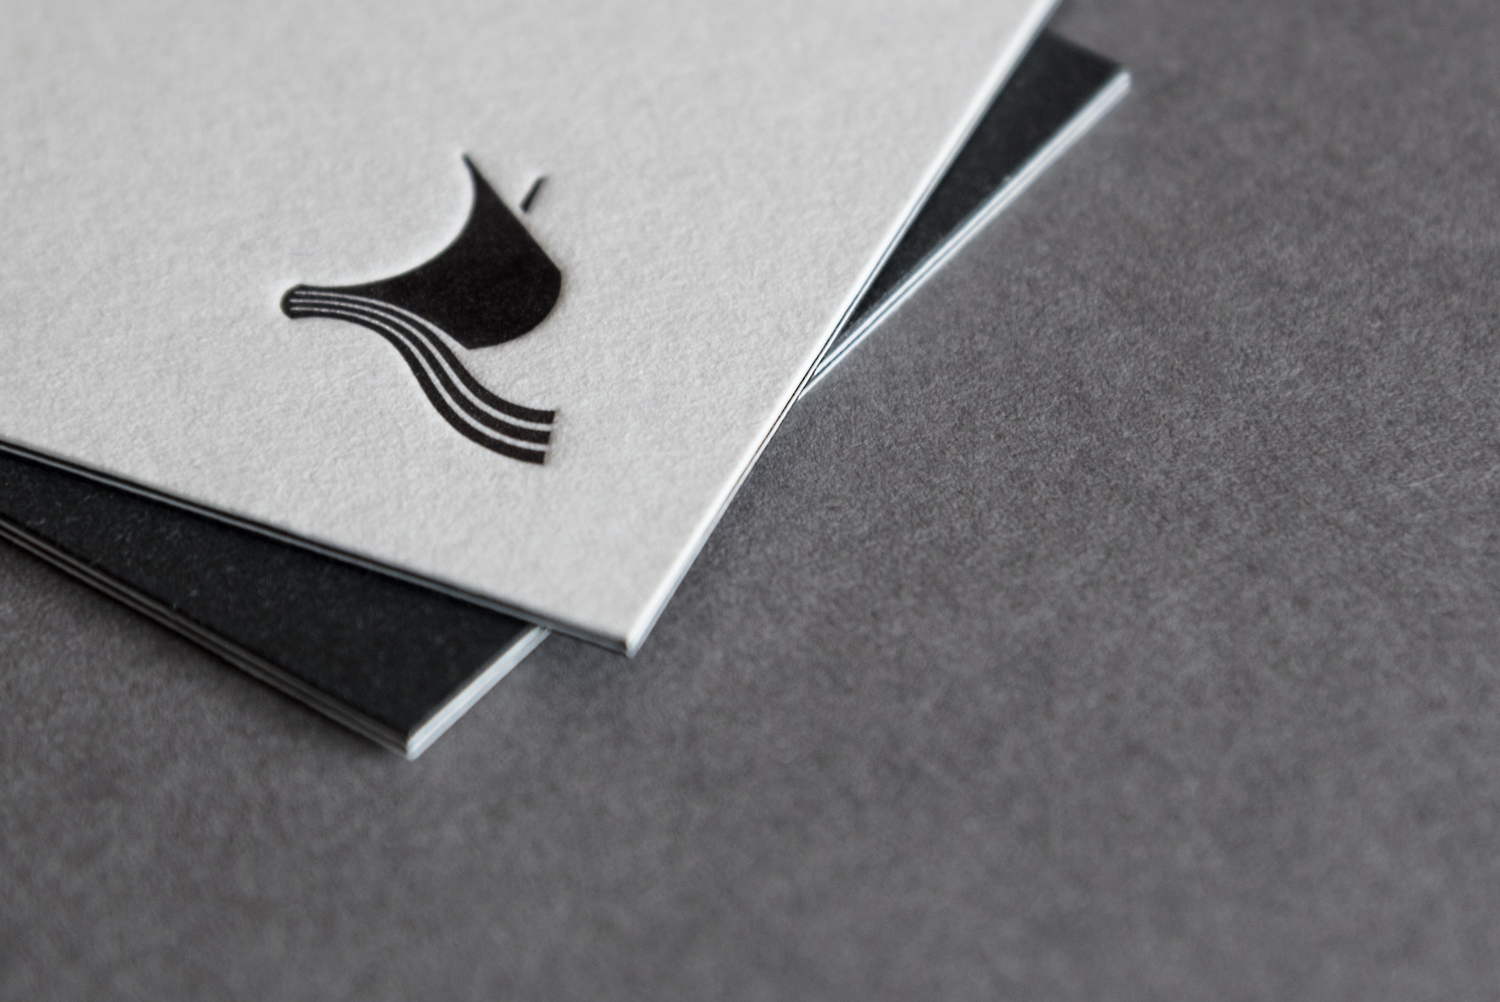 Logo and triplex business cards by London-based design studio, private press and typography workshop The Counter Press for UK independent publisher Rattis Books.